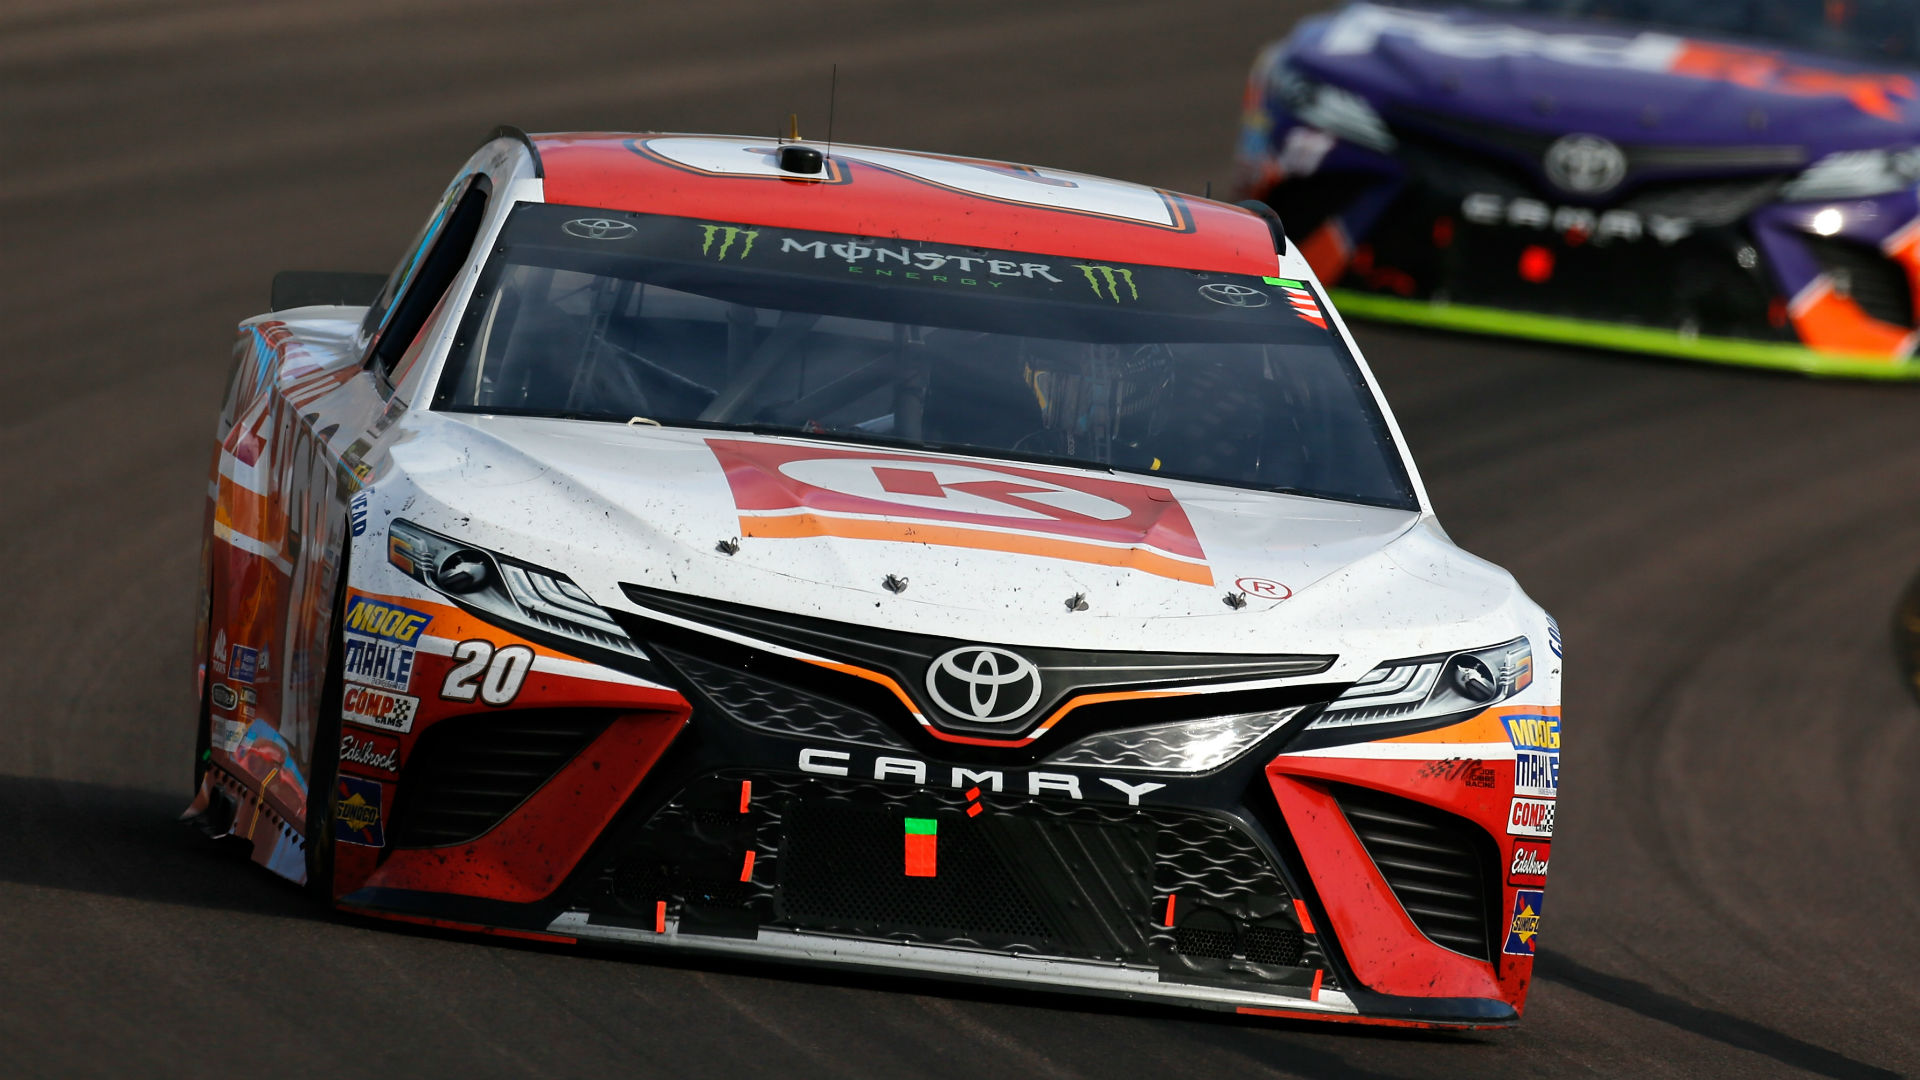 NASCAR results at Phoenix: Matt Kenseth spoils Chase Elliott's title hopes with late pass